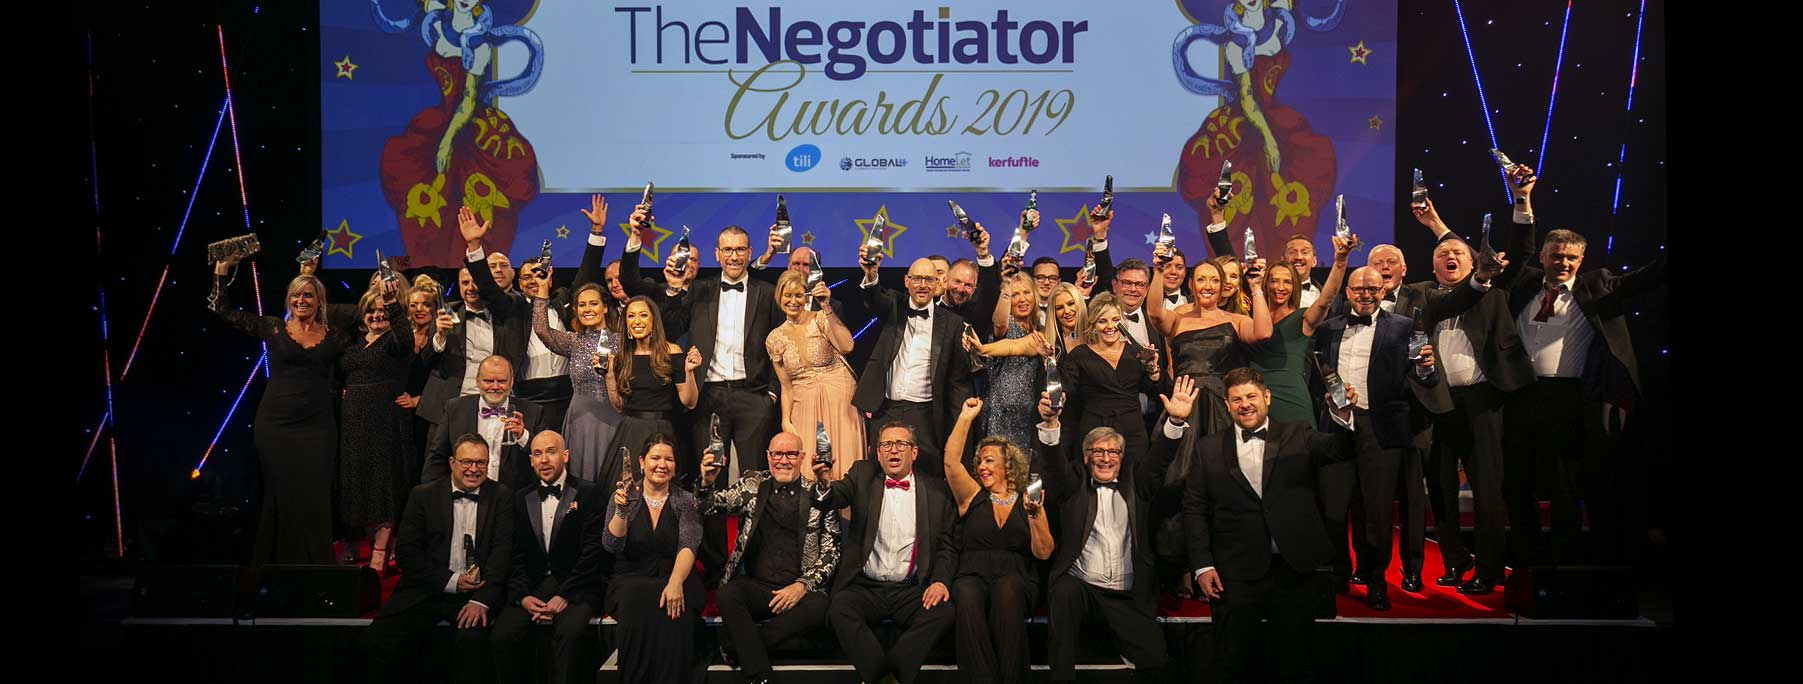 The Negotiator Awards National Estate and Letting Agent Awards Winners 2019 image